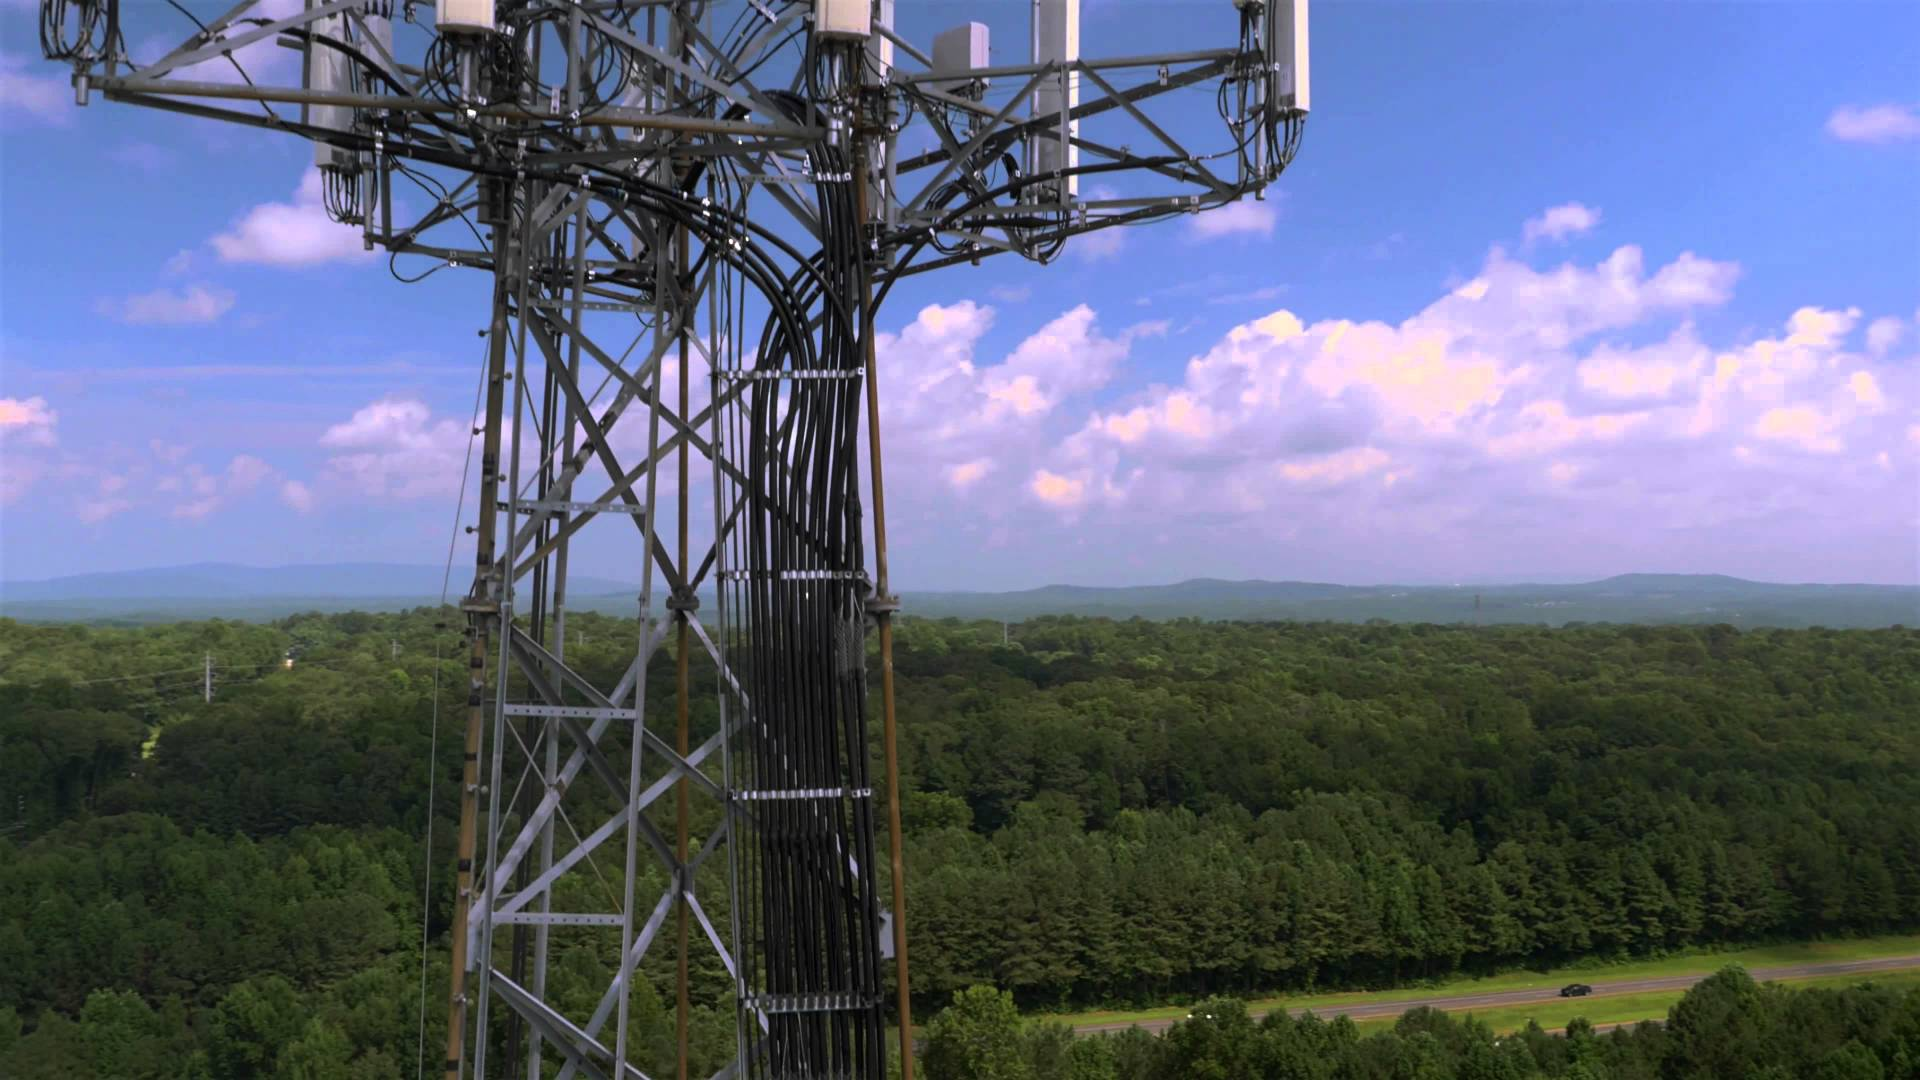 inspection of cell tower by drone